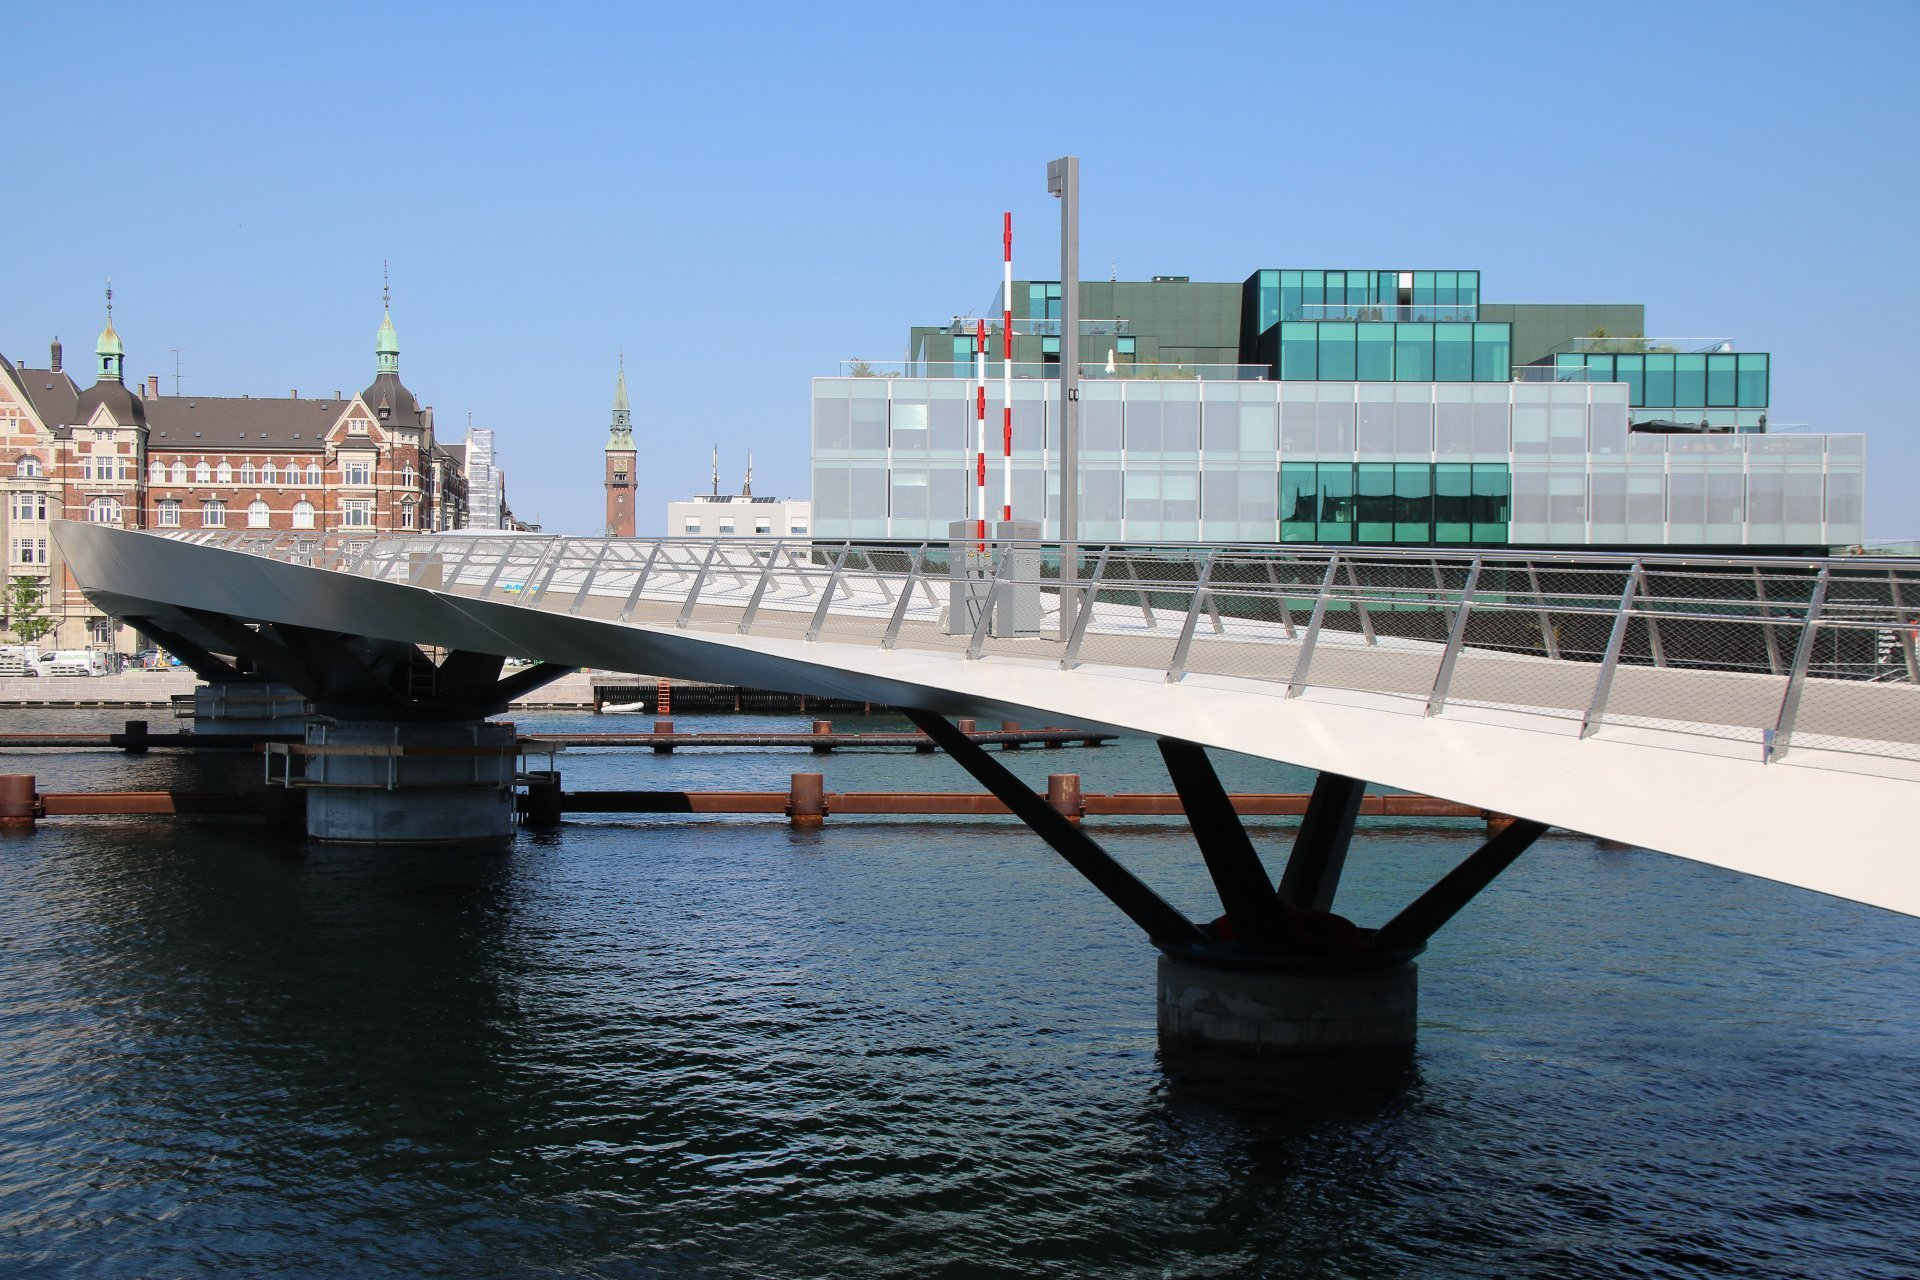 Lille Langebro swing bridge